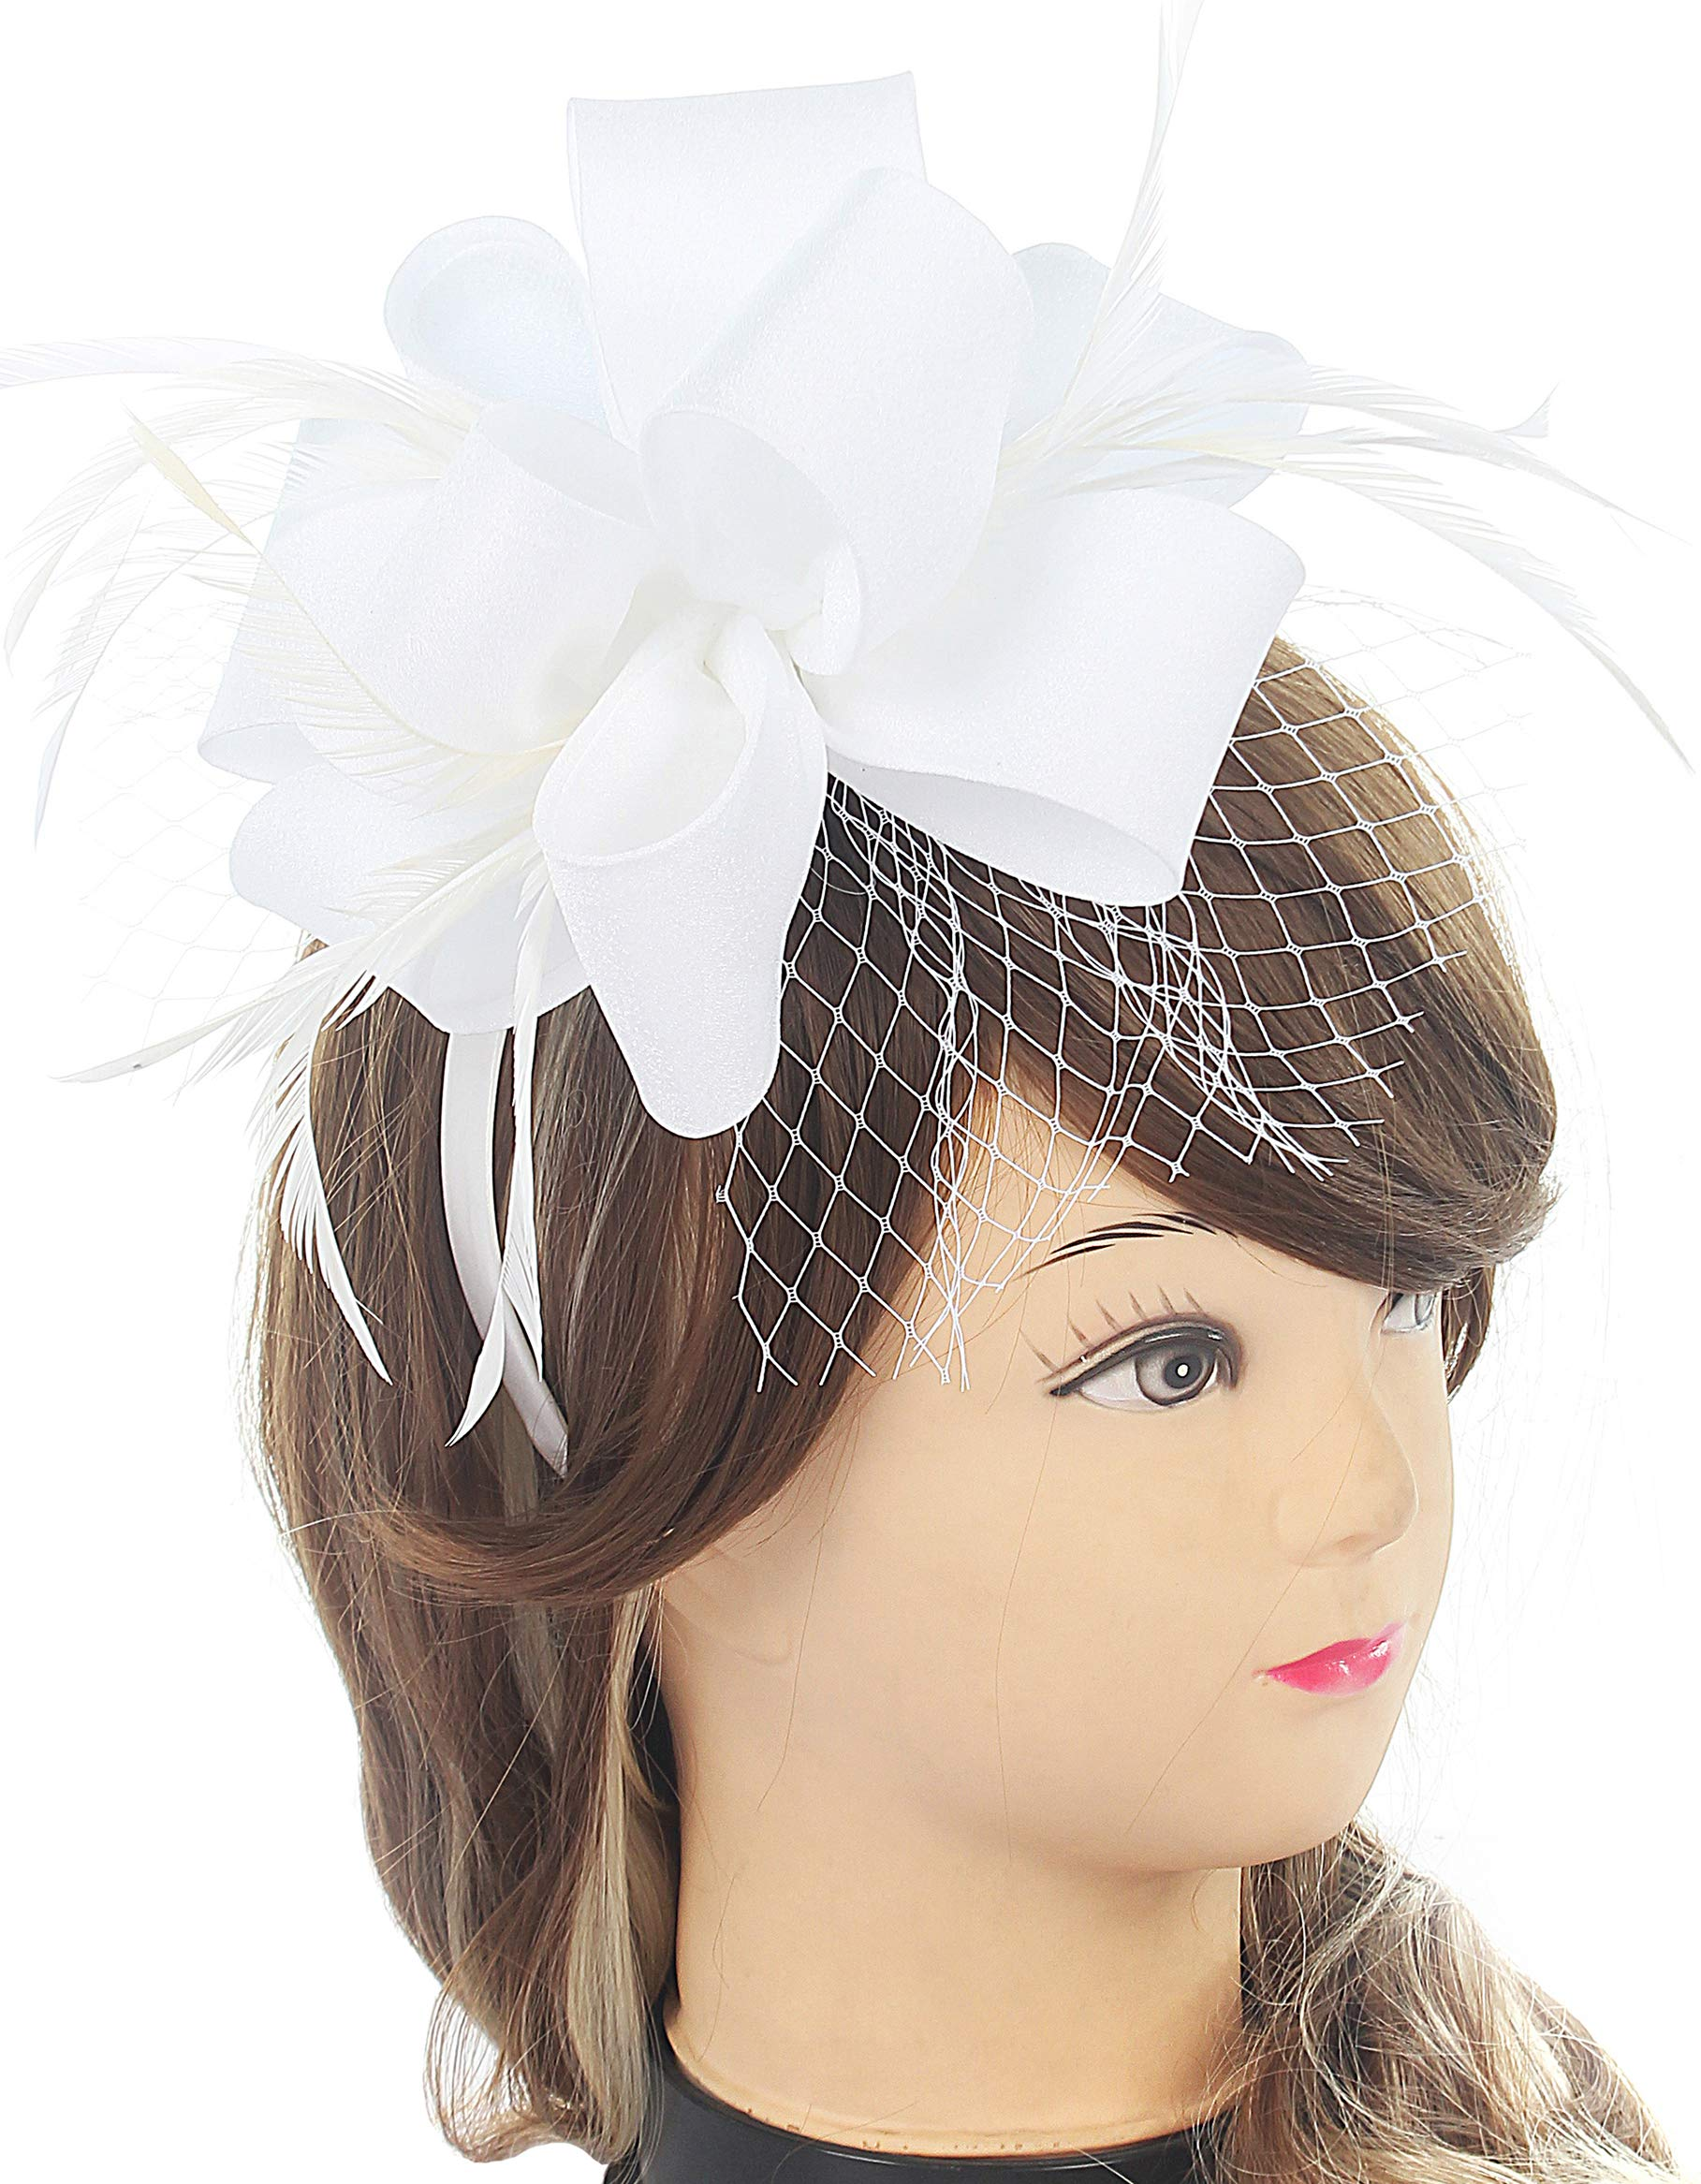 Myjoyday Fascinators with Feathers Clip Kentucky Derby Hats for Women Cocktail Tea Party Hair Fascinators White (Satin)